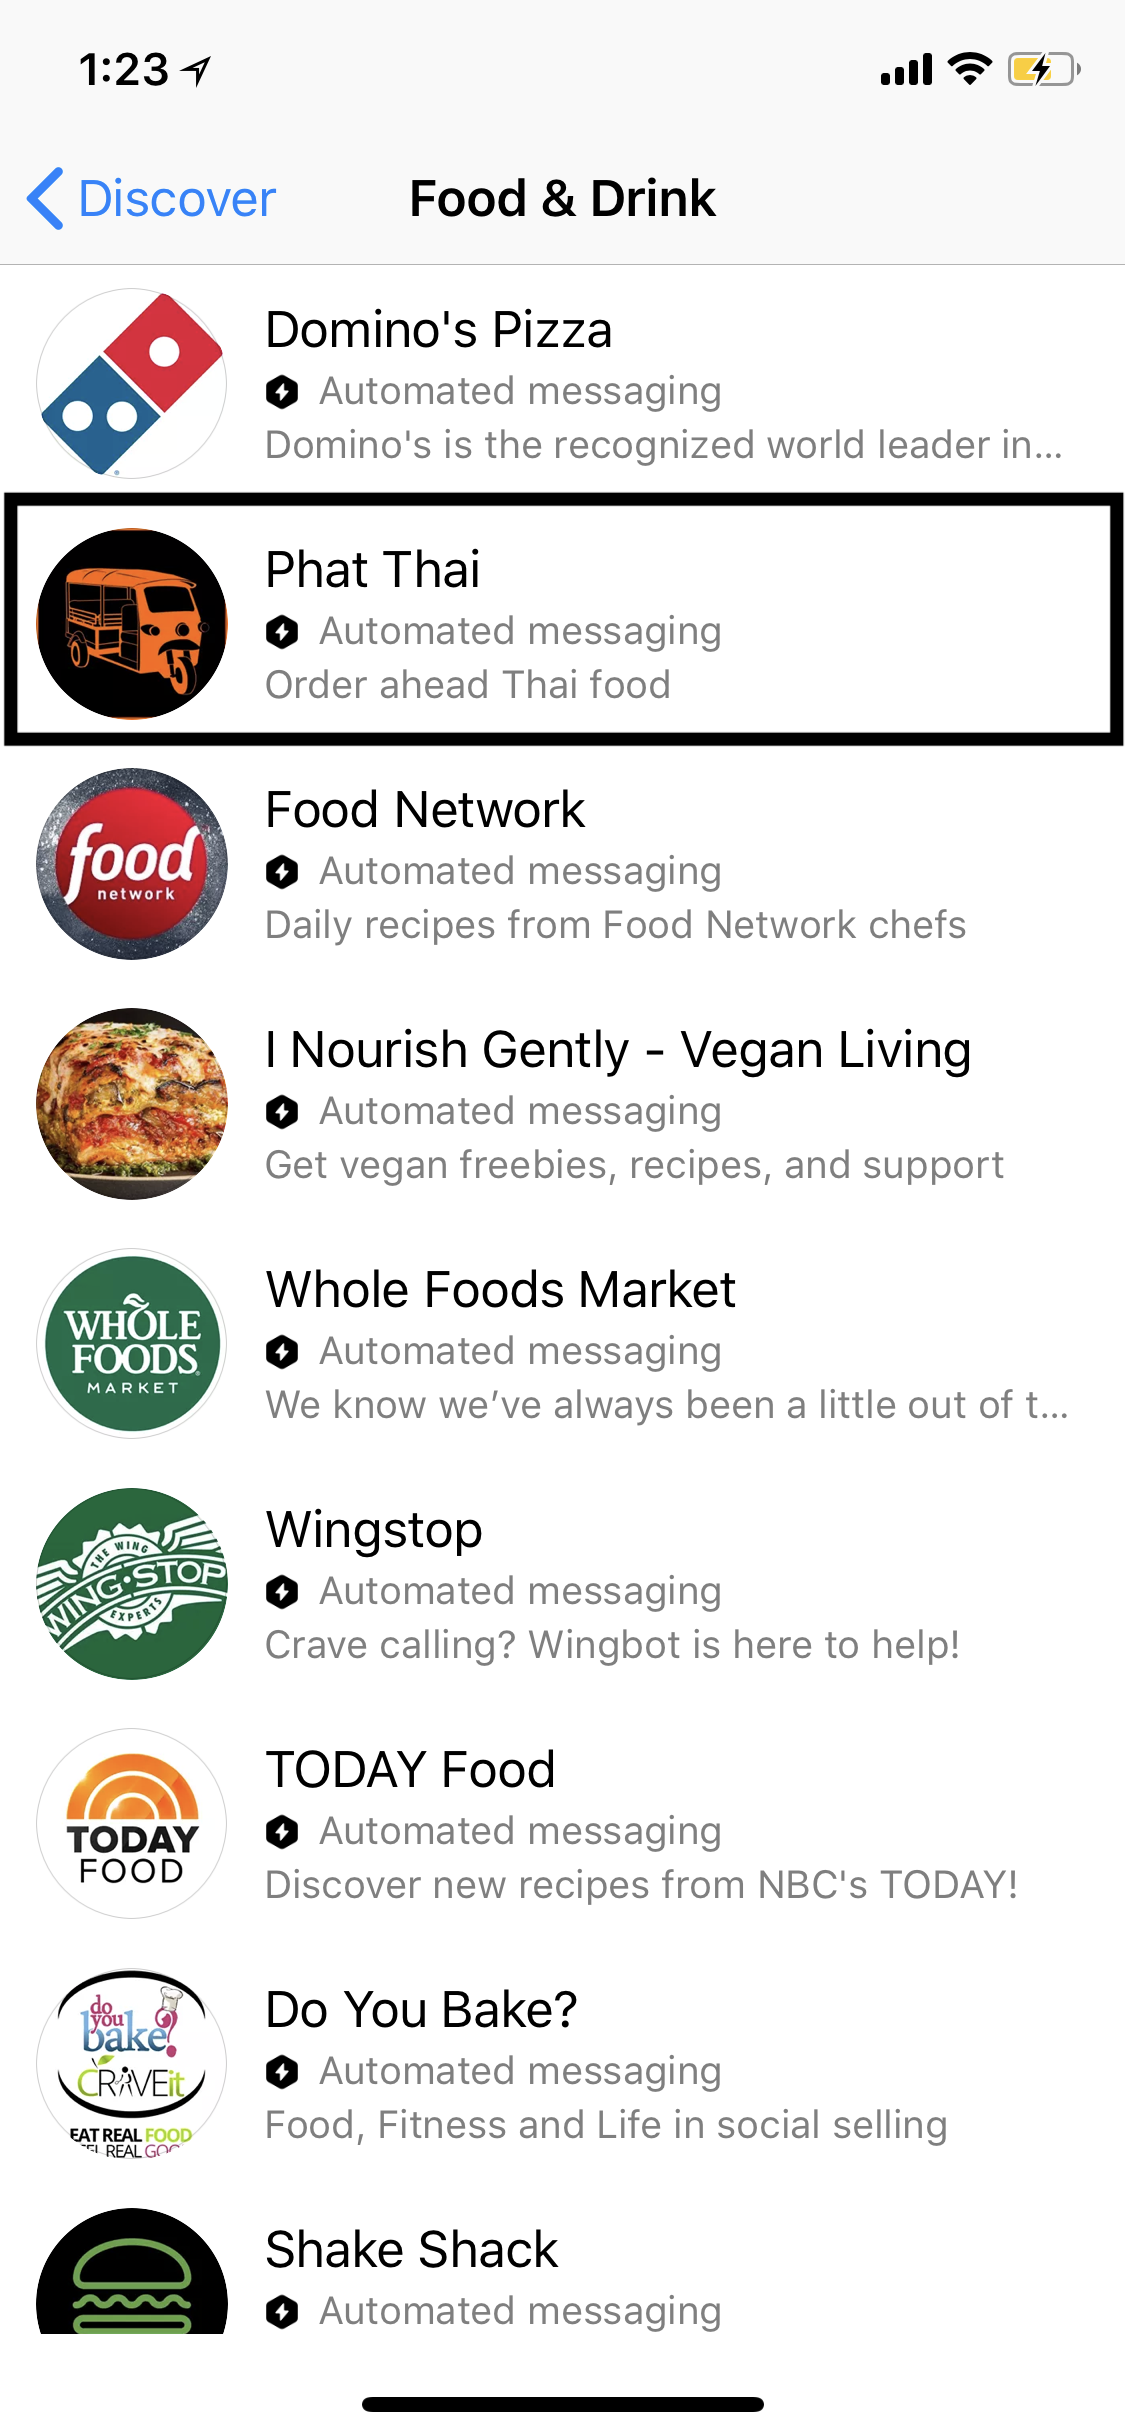 Integrate your restaurant with Facebook Messenger ordering, payment and many other features!